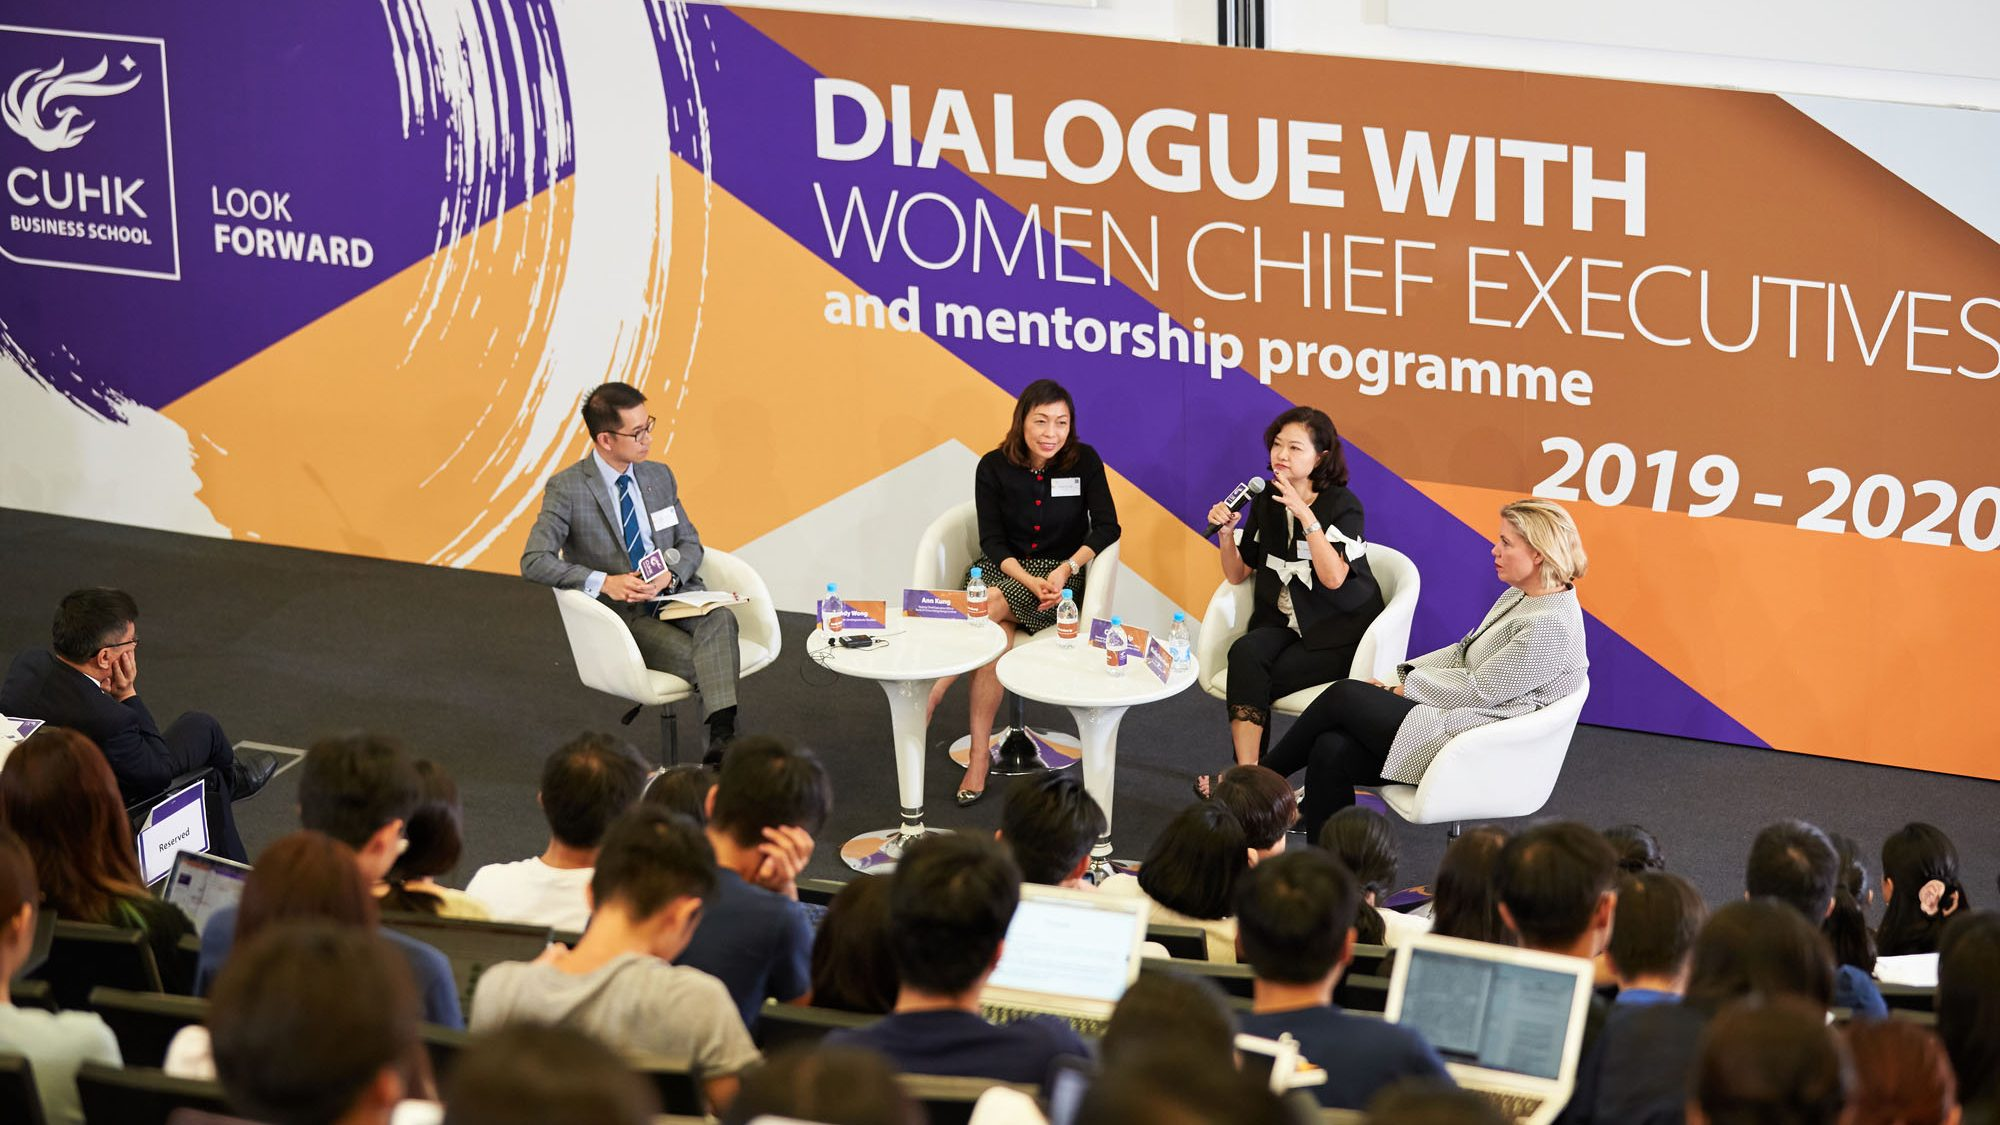 Dialogue with Women Chief Executives